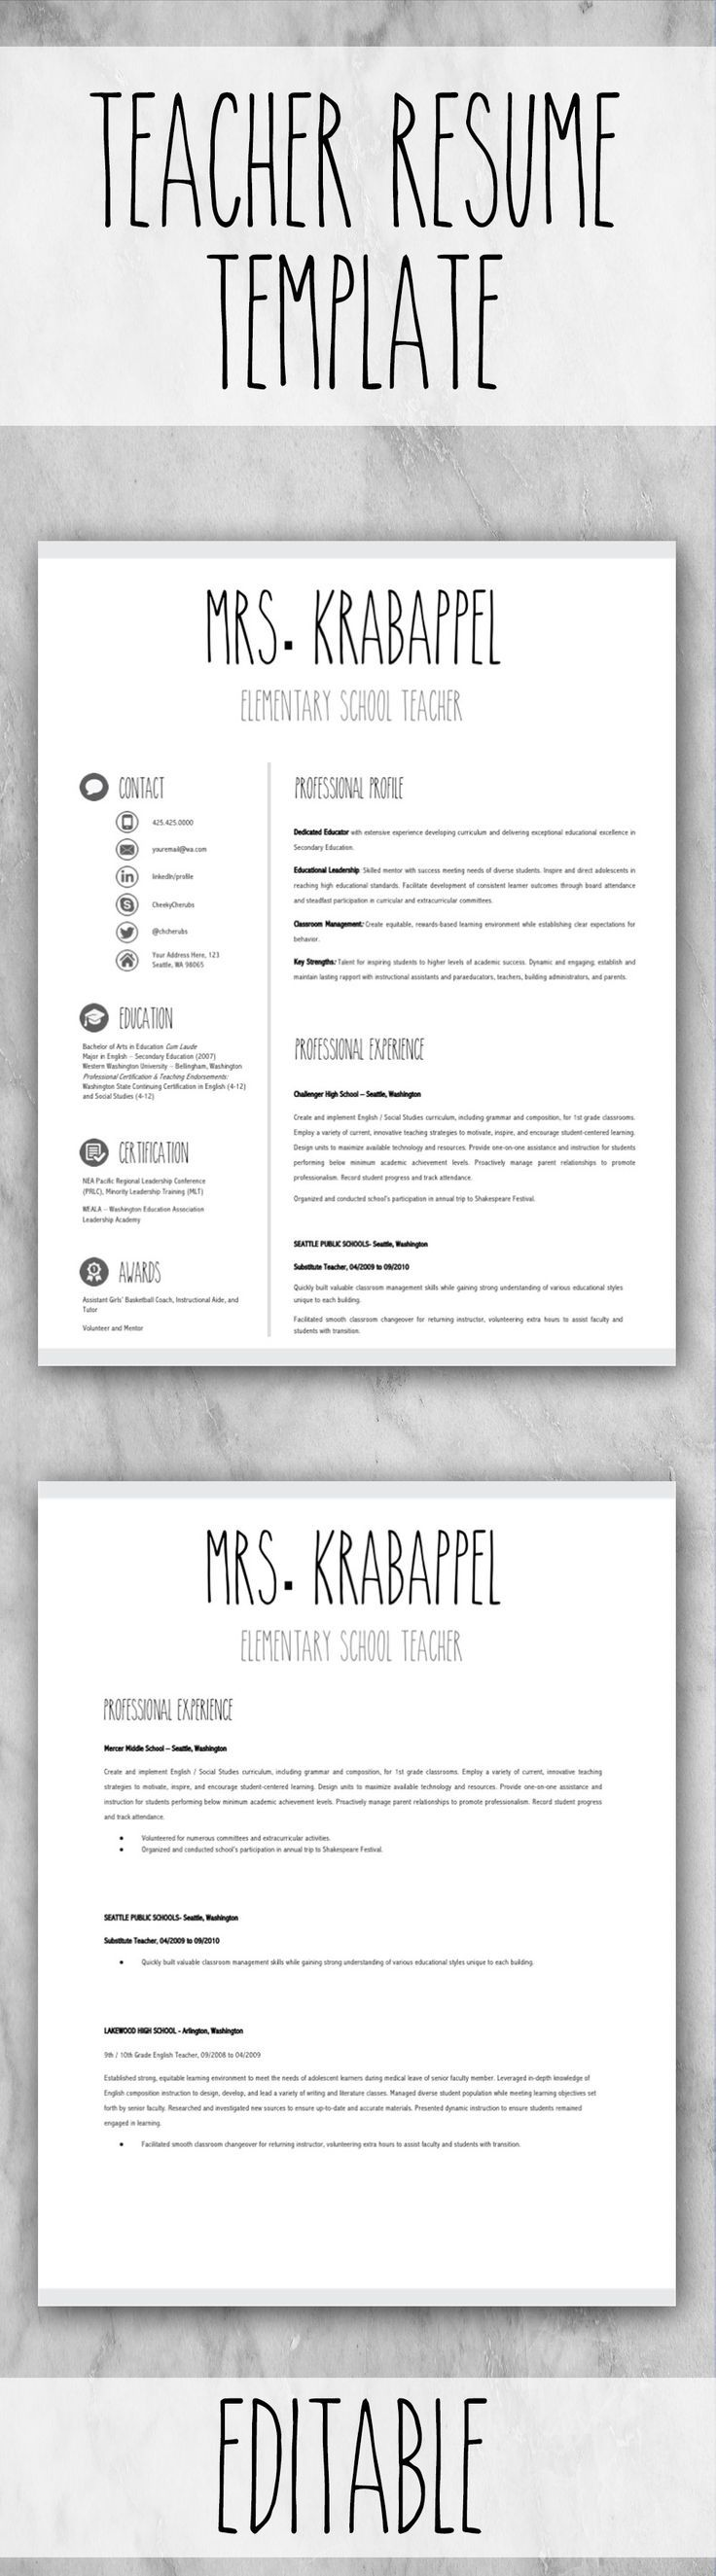 powerpoint language teacher cv template